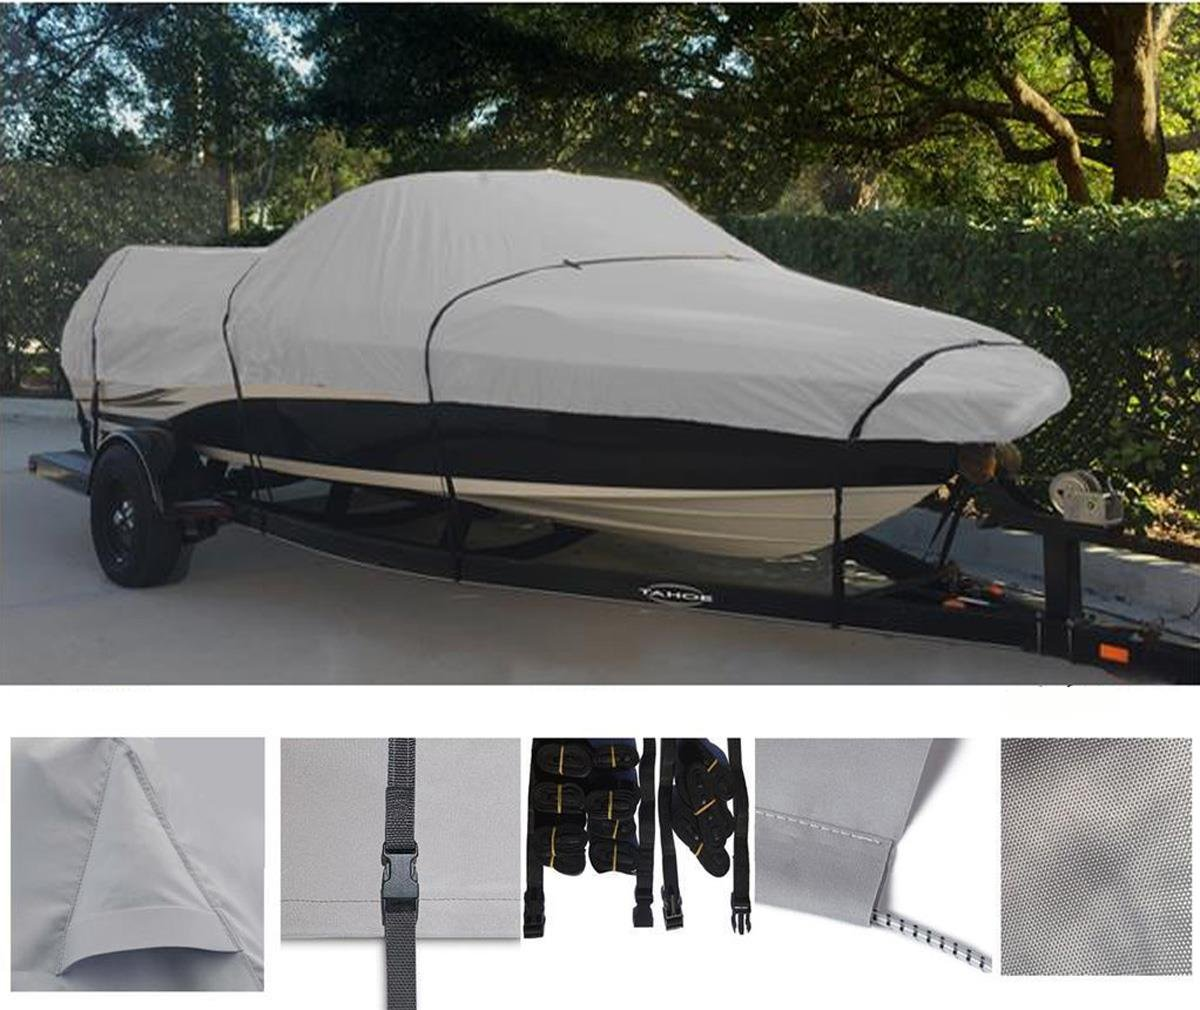 GREY, STORAGE, TRAVEL, MOORING BOAT COVER FOR Yamaha SR230 Jet GREY, STORAGE, TRAVEL, MOORING BOAT COVER FOR 2003 2004 2005 by SBU